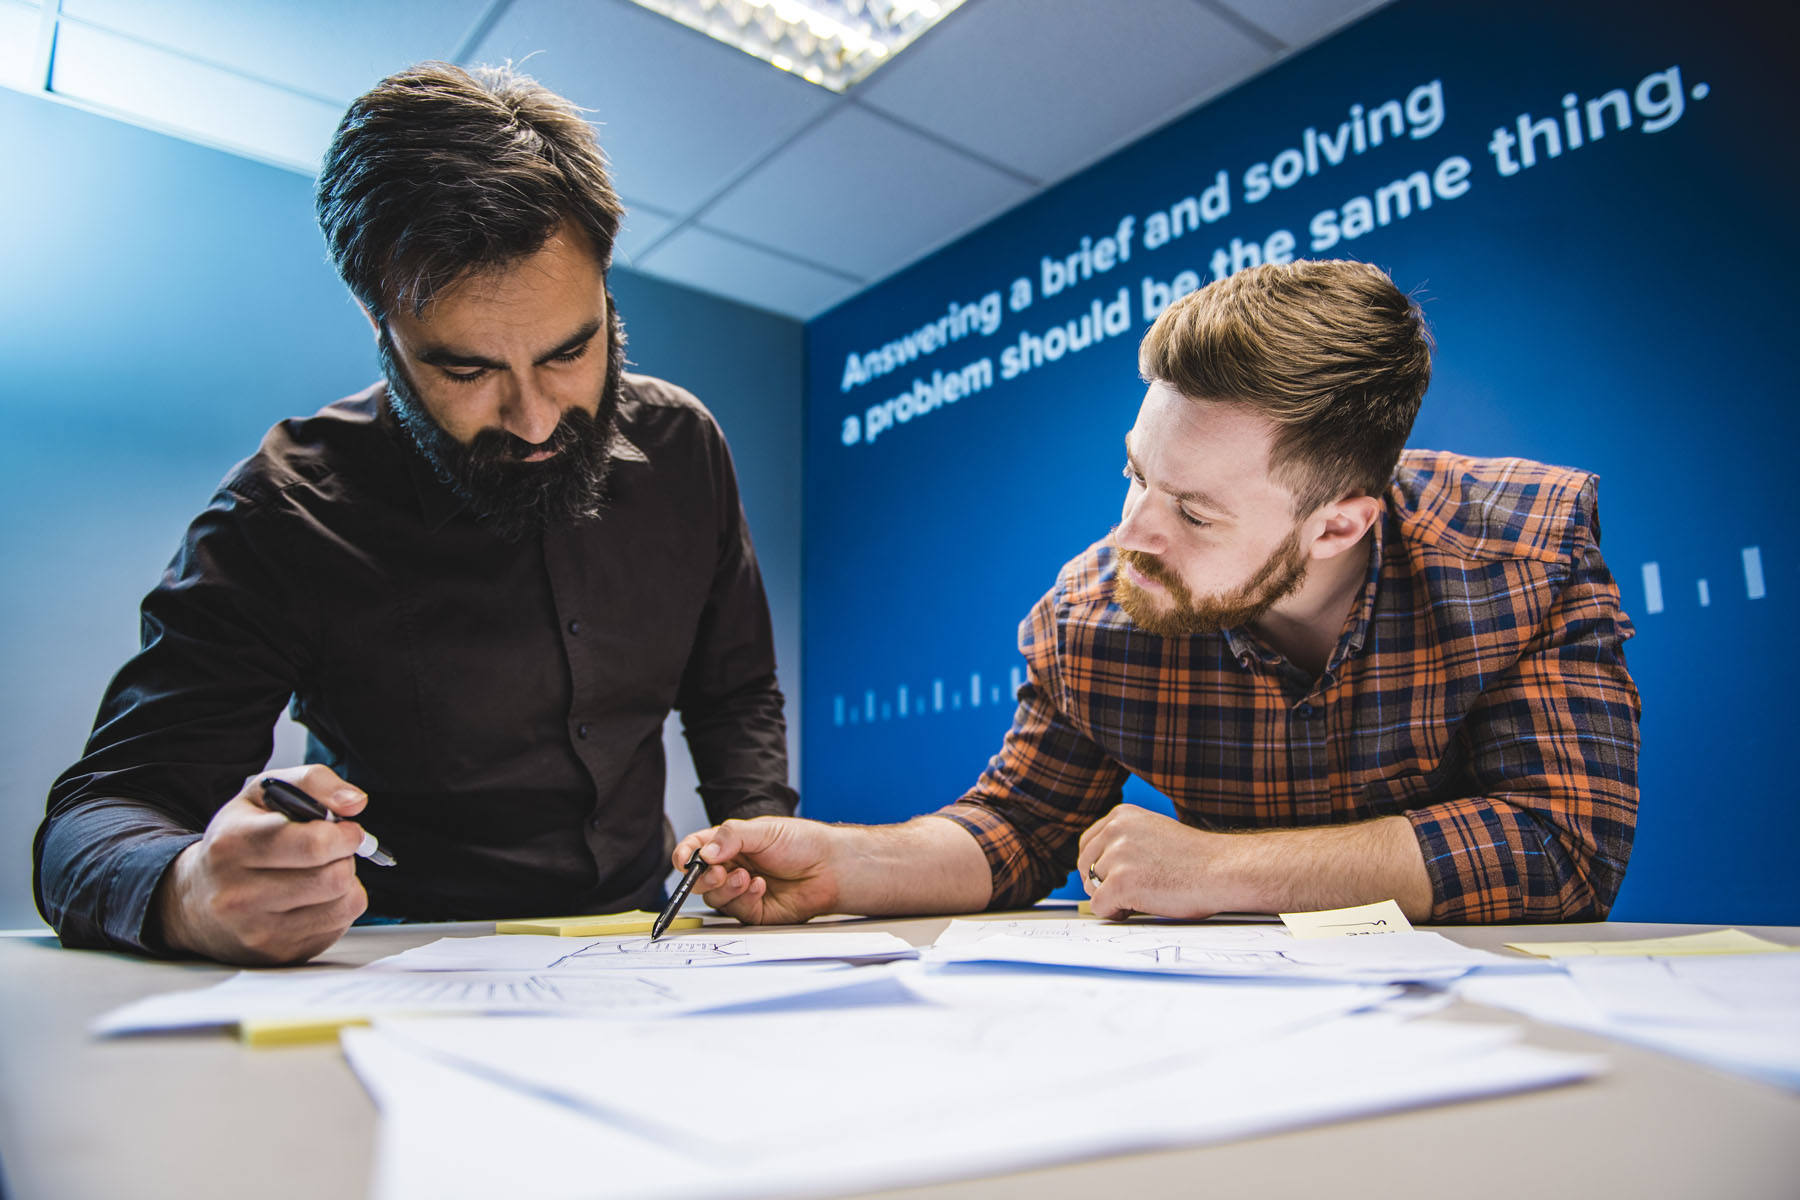 Designers working on retail display concept drawings